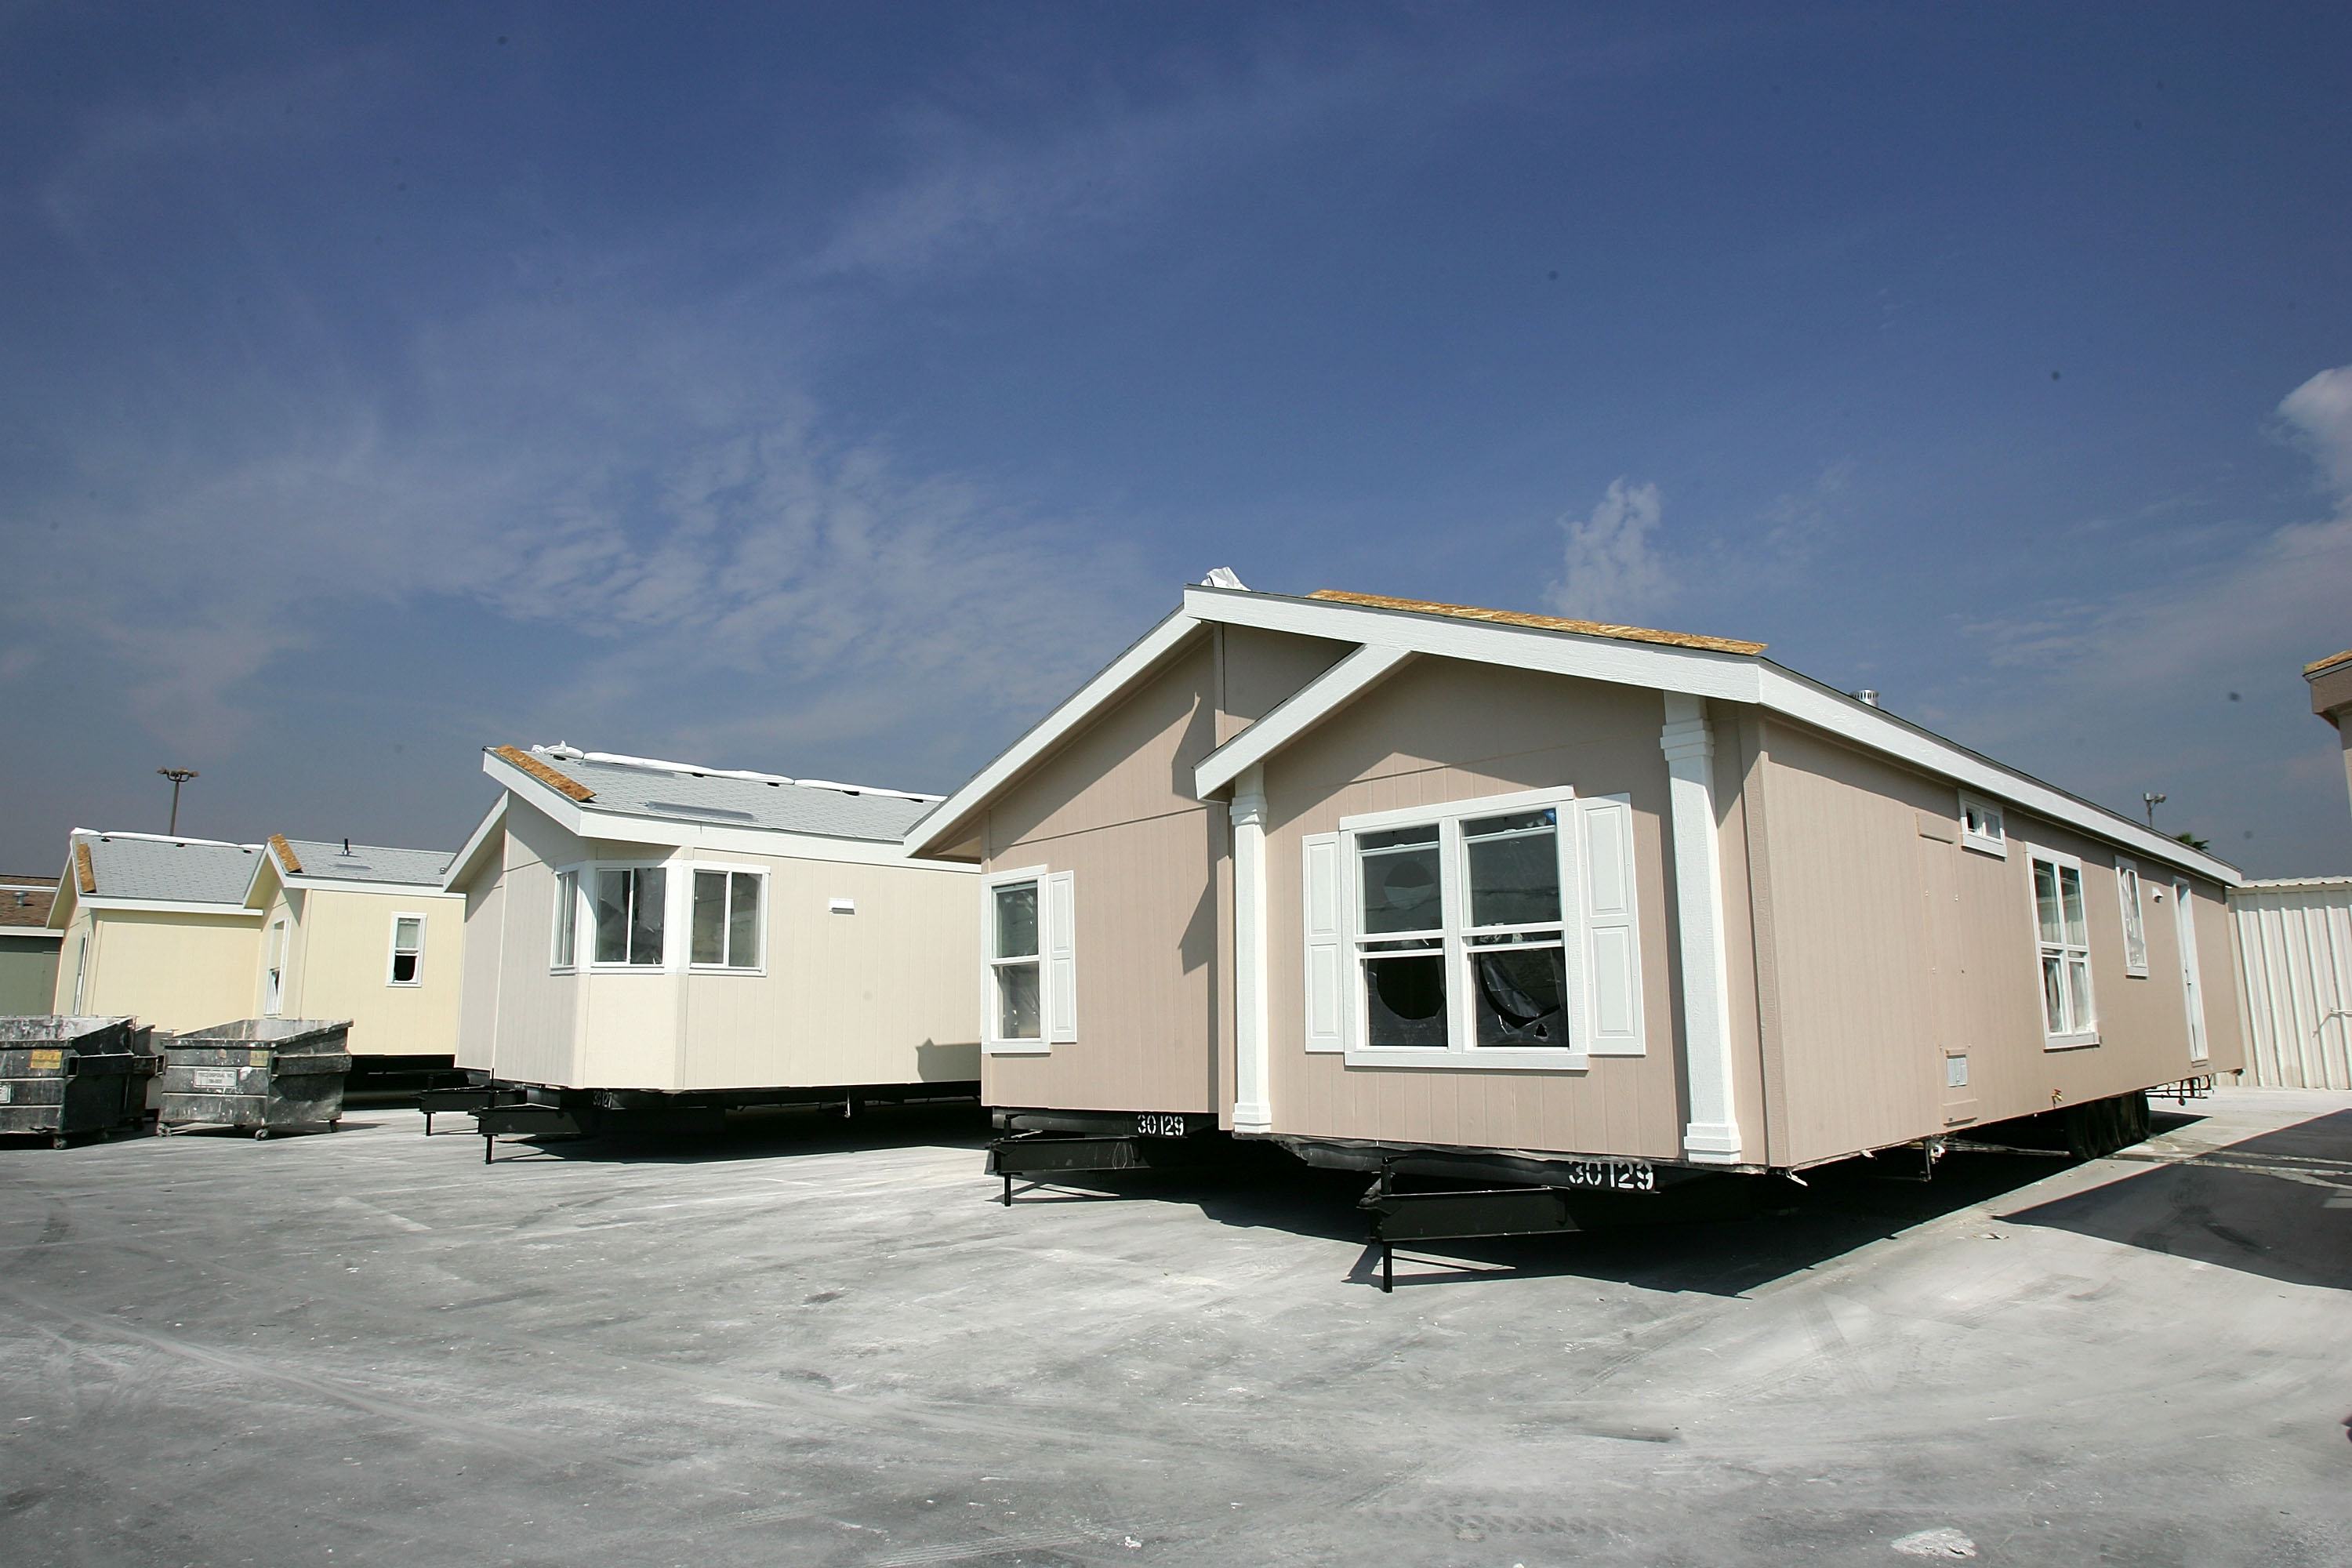 What Is the Resale Value of a Manufactured Home Vs. a Stick Built Home? |  Home Guides | SF Gate